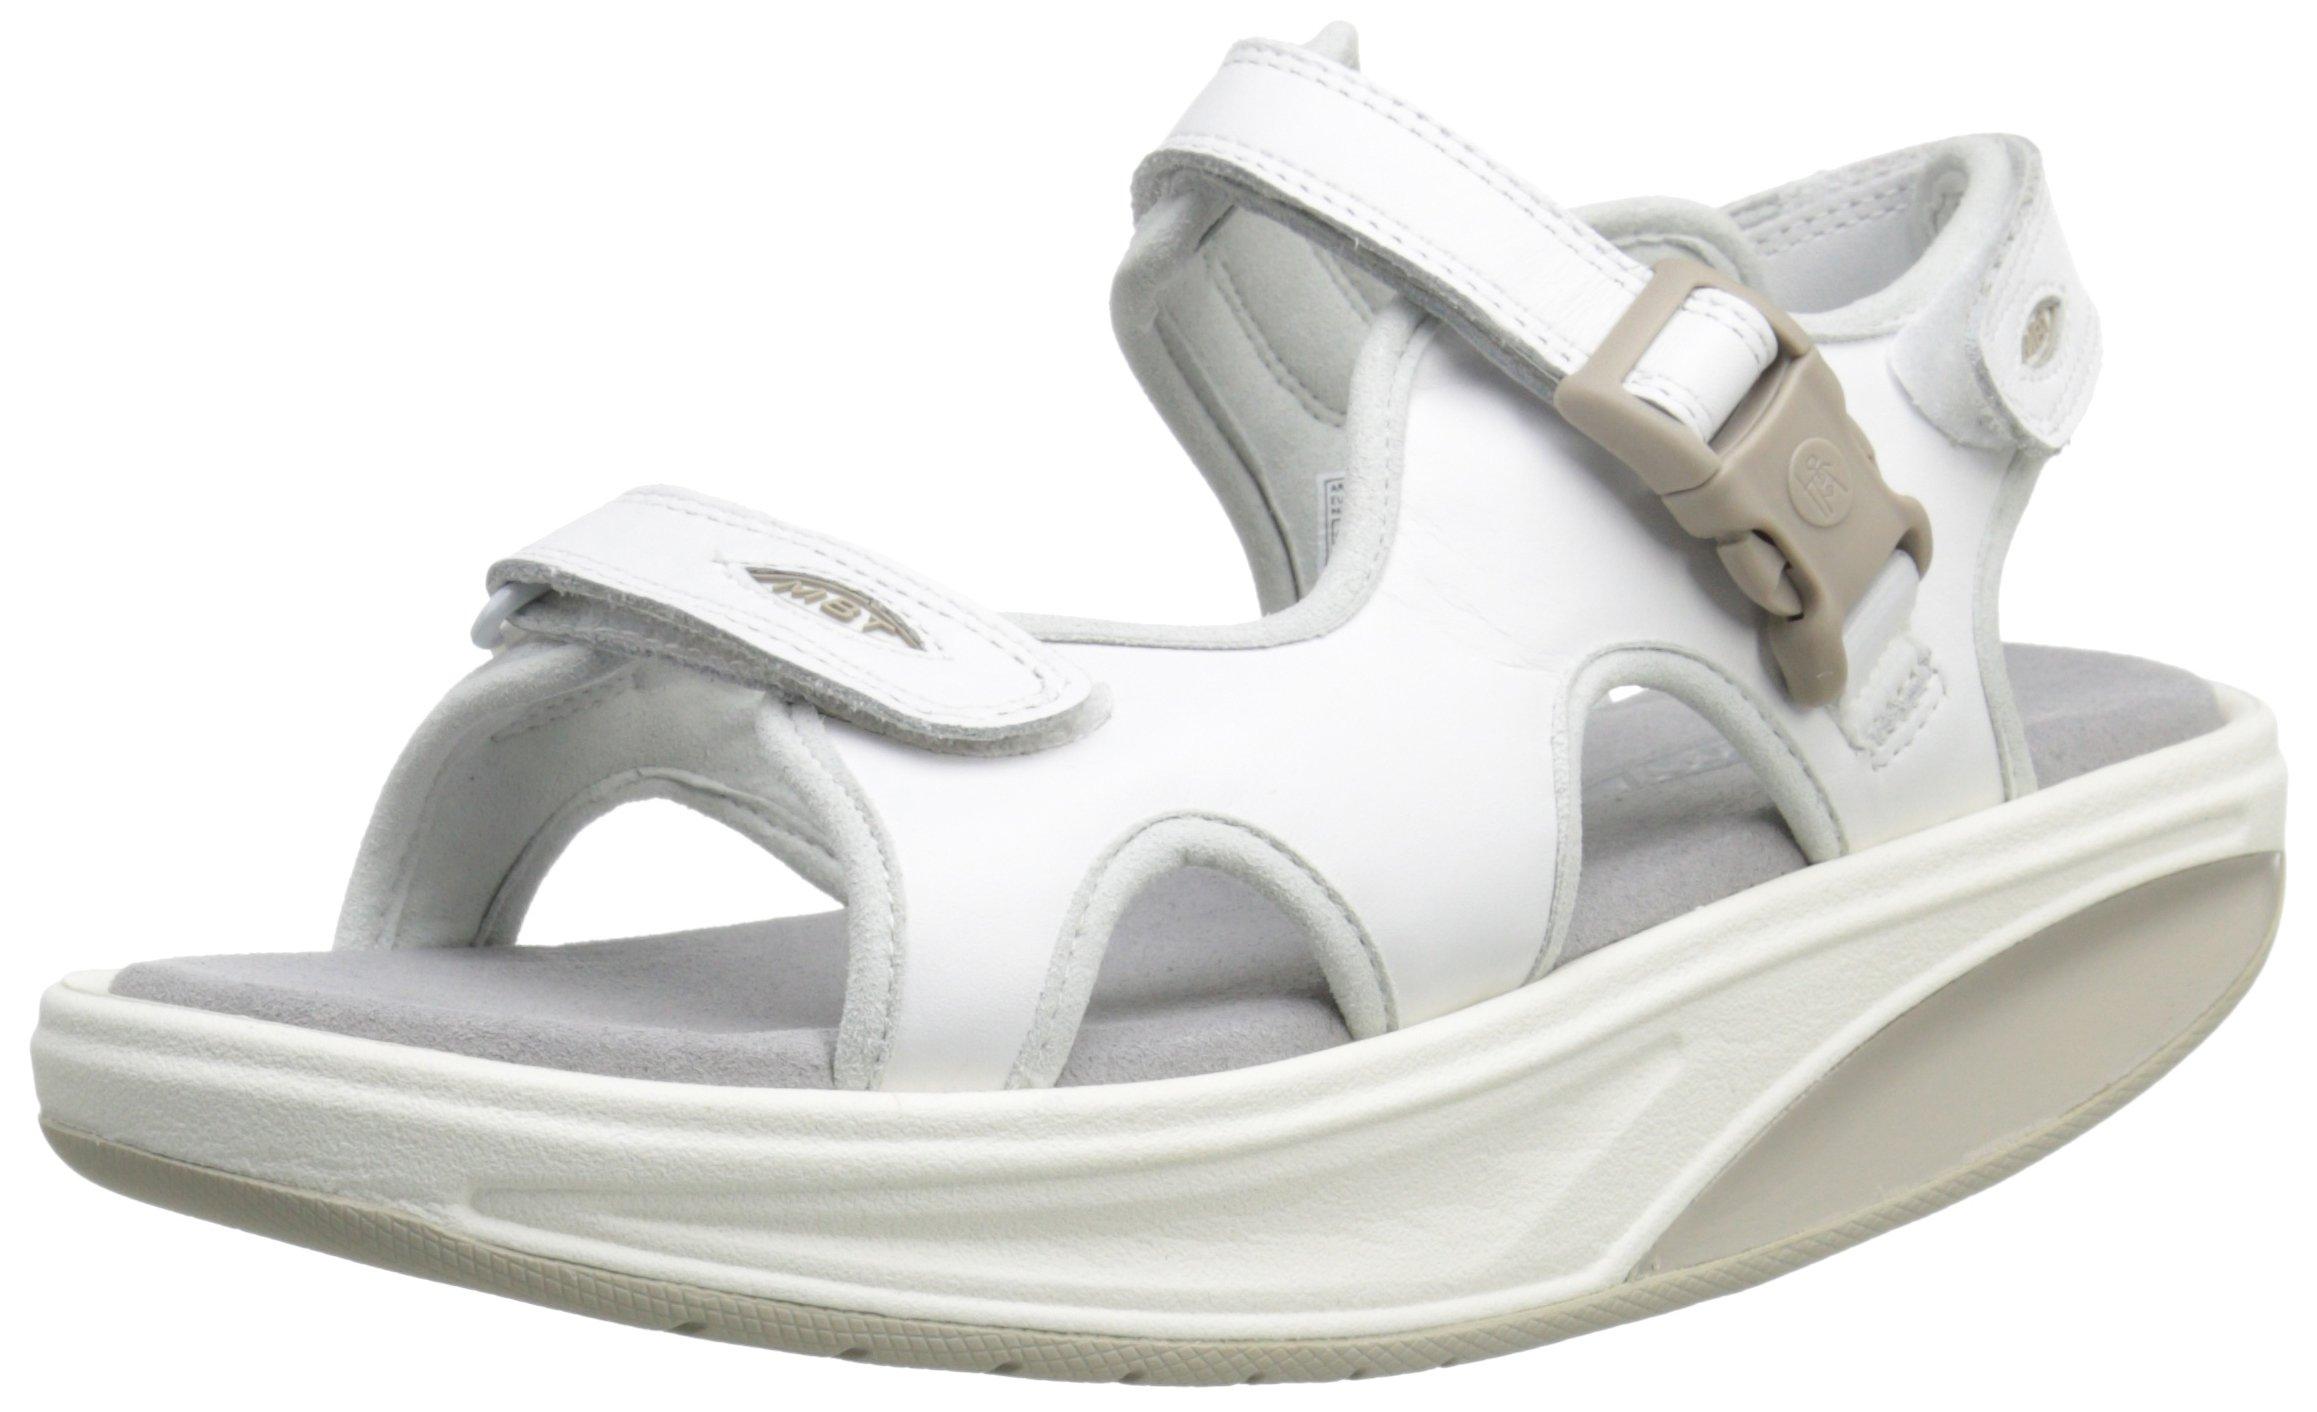 MBT Women's Kisumu 3s W Adjustable Sandal, White, 37 EU/6-6.5 B(M) US by MBT